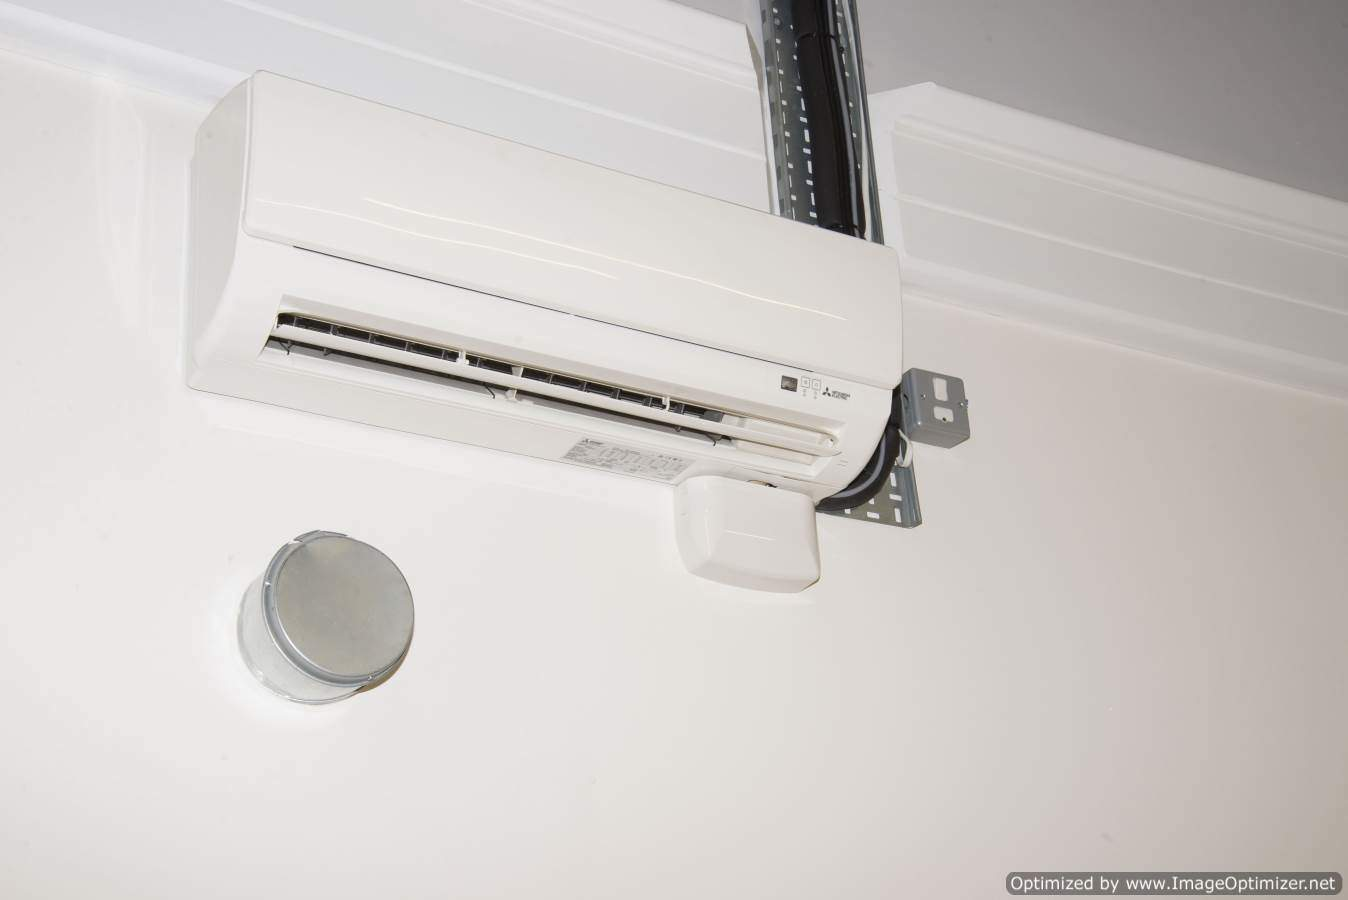 Mitsubishi Electrics Vrf City Multi Air Conditioning Huckletree System Fileturn Mechanical And Electrical